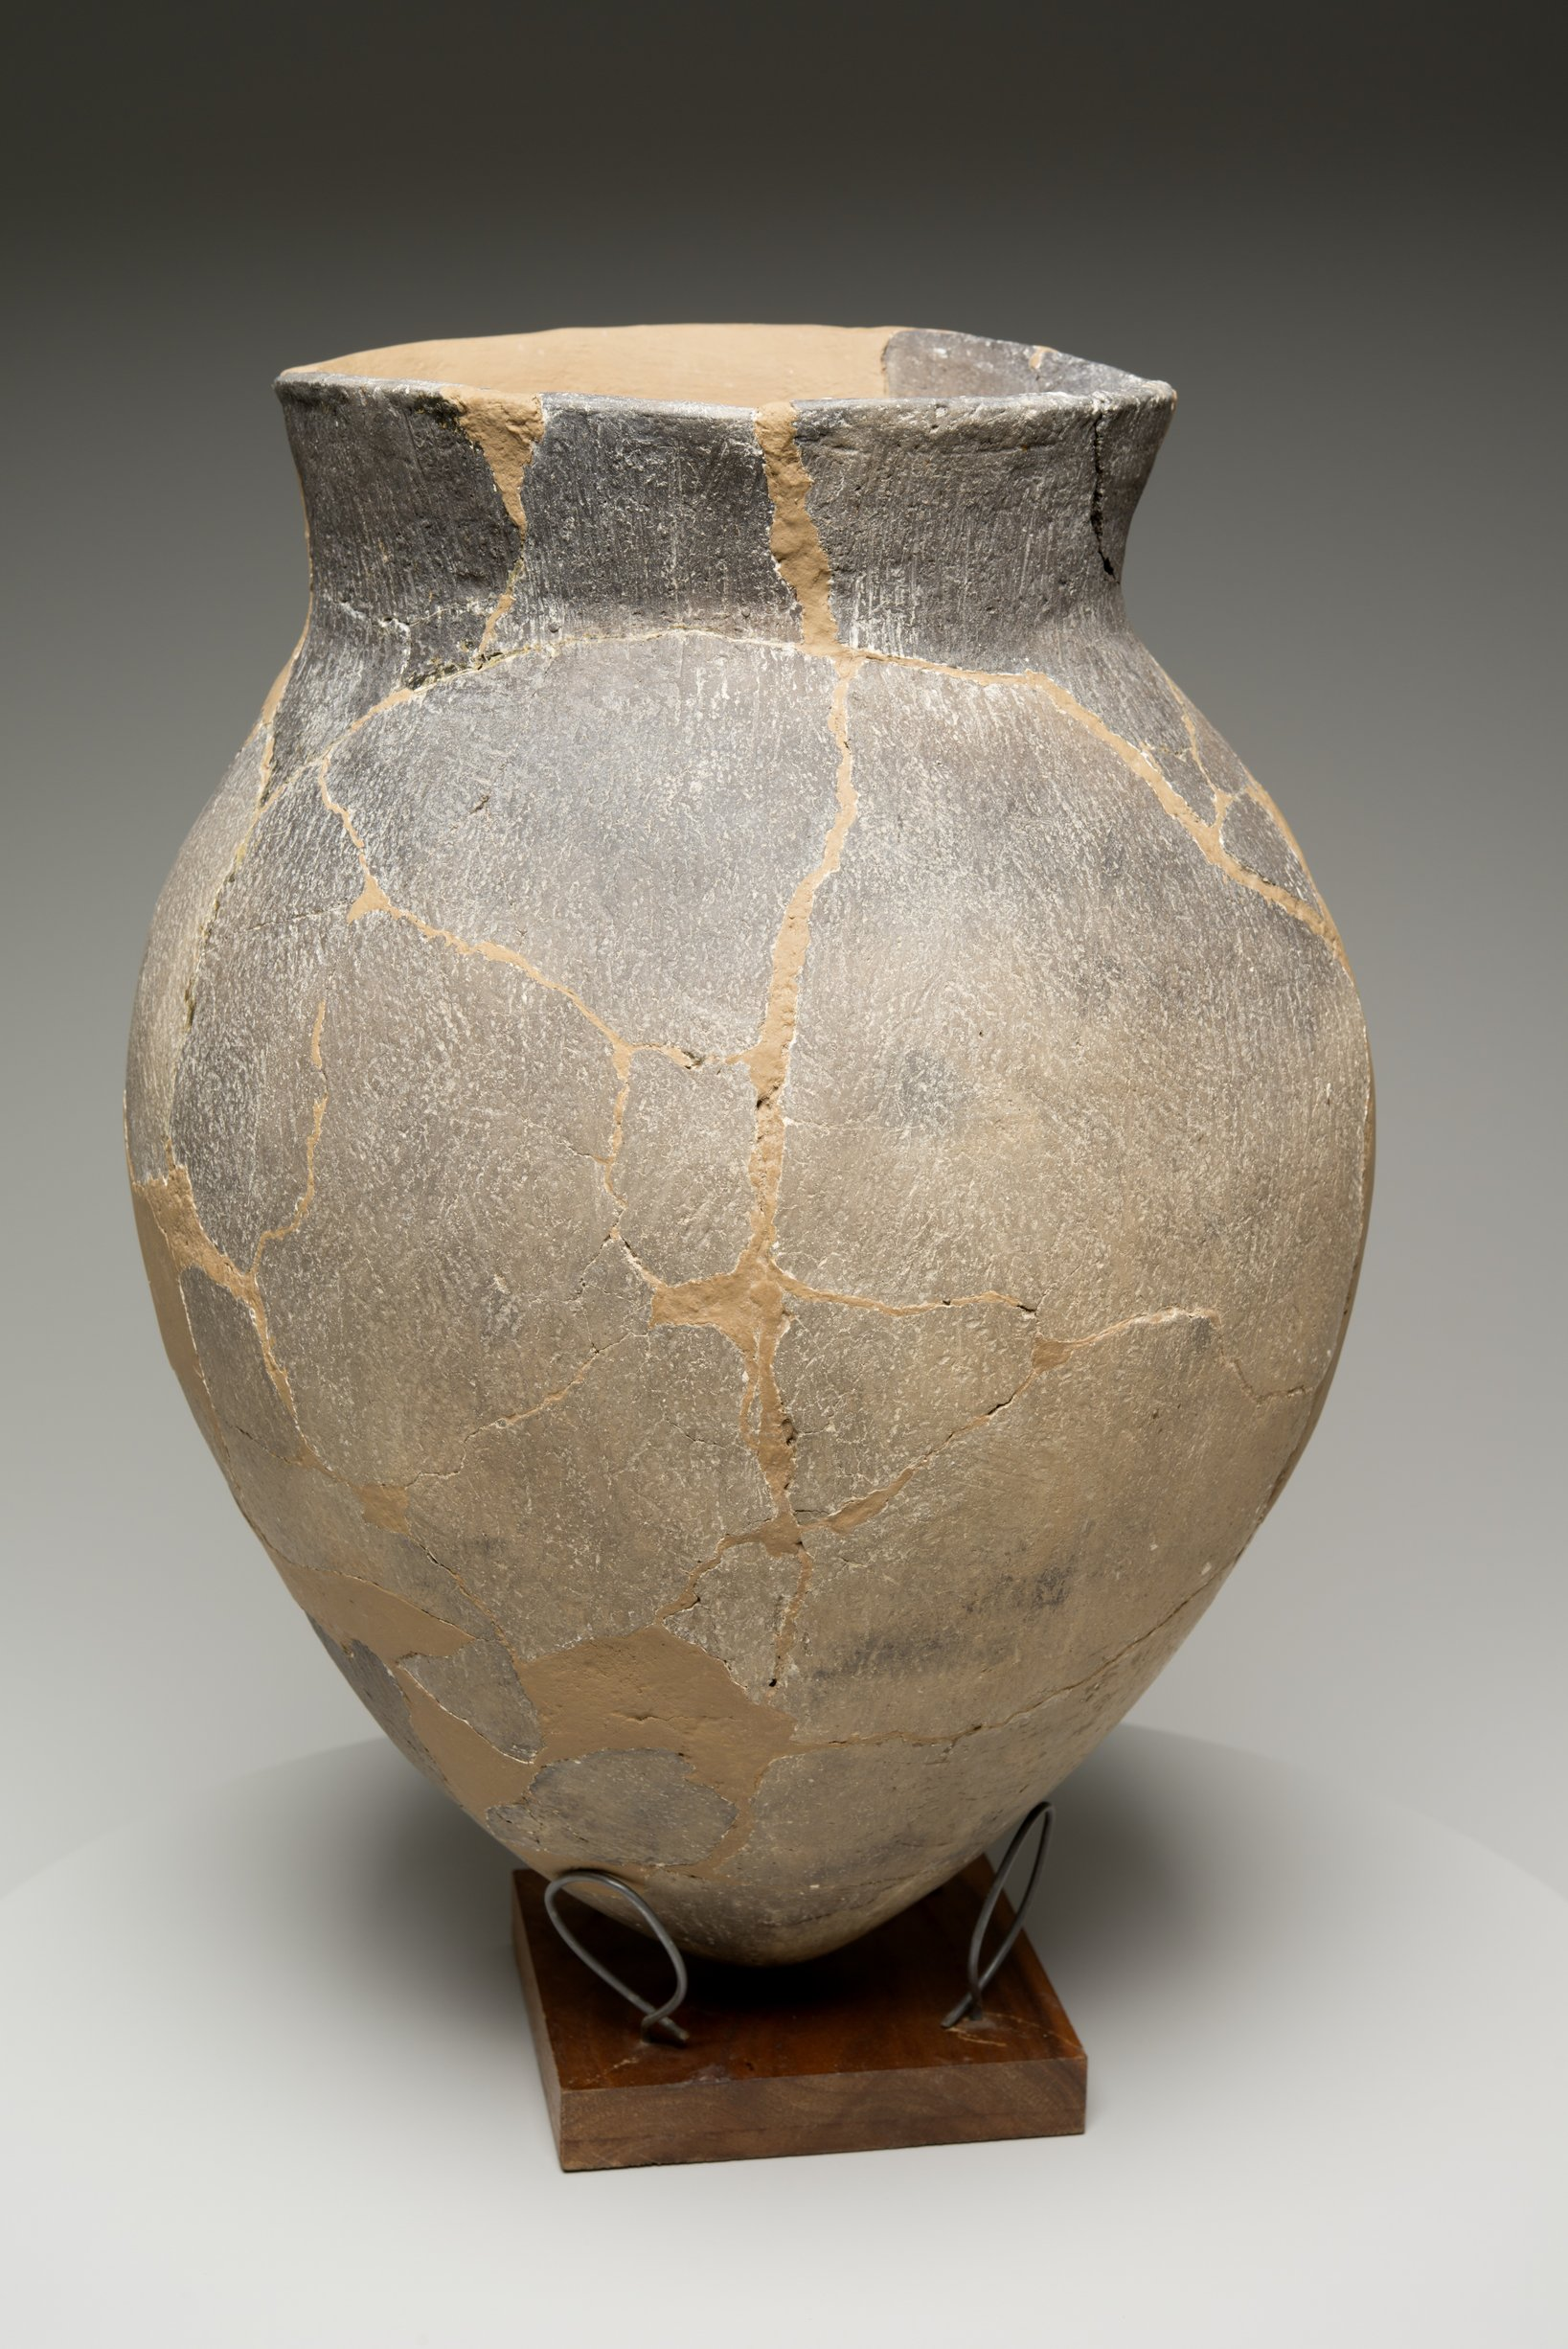 Grasshopper Falls phase Early Ceramic Vessel From the Booth Site, 14JN349 - 36